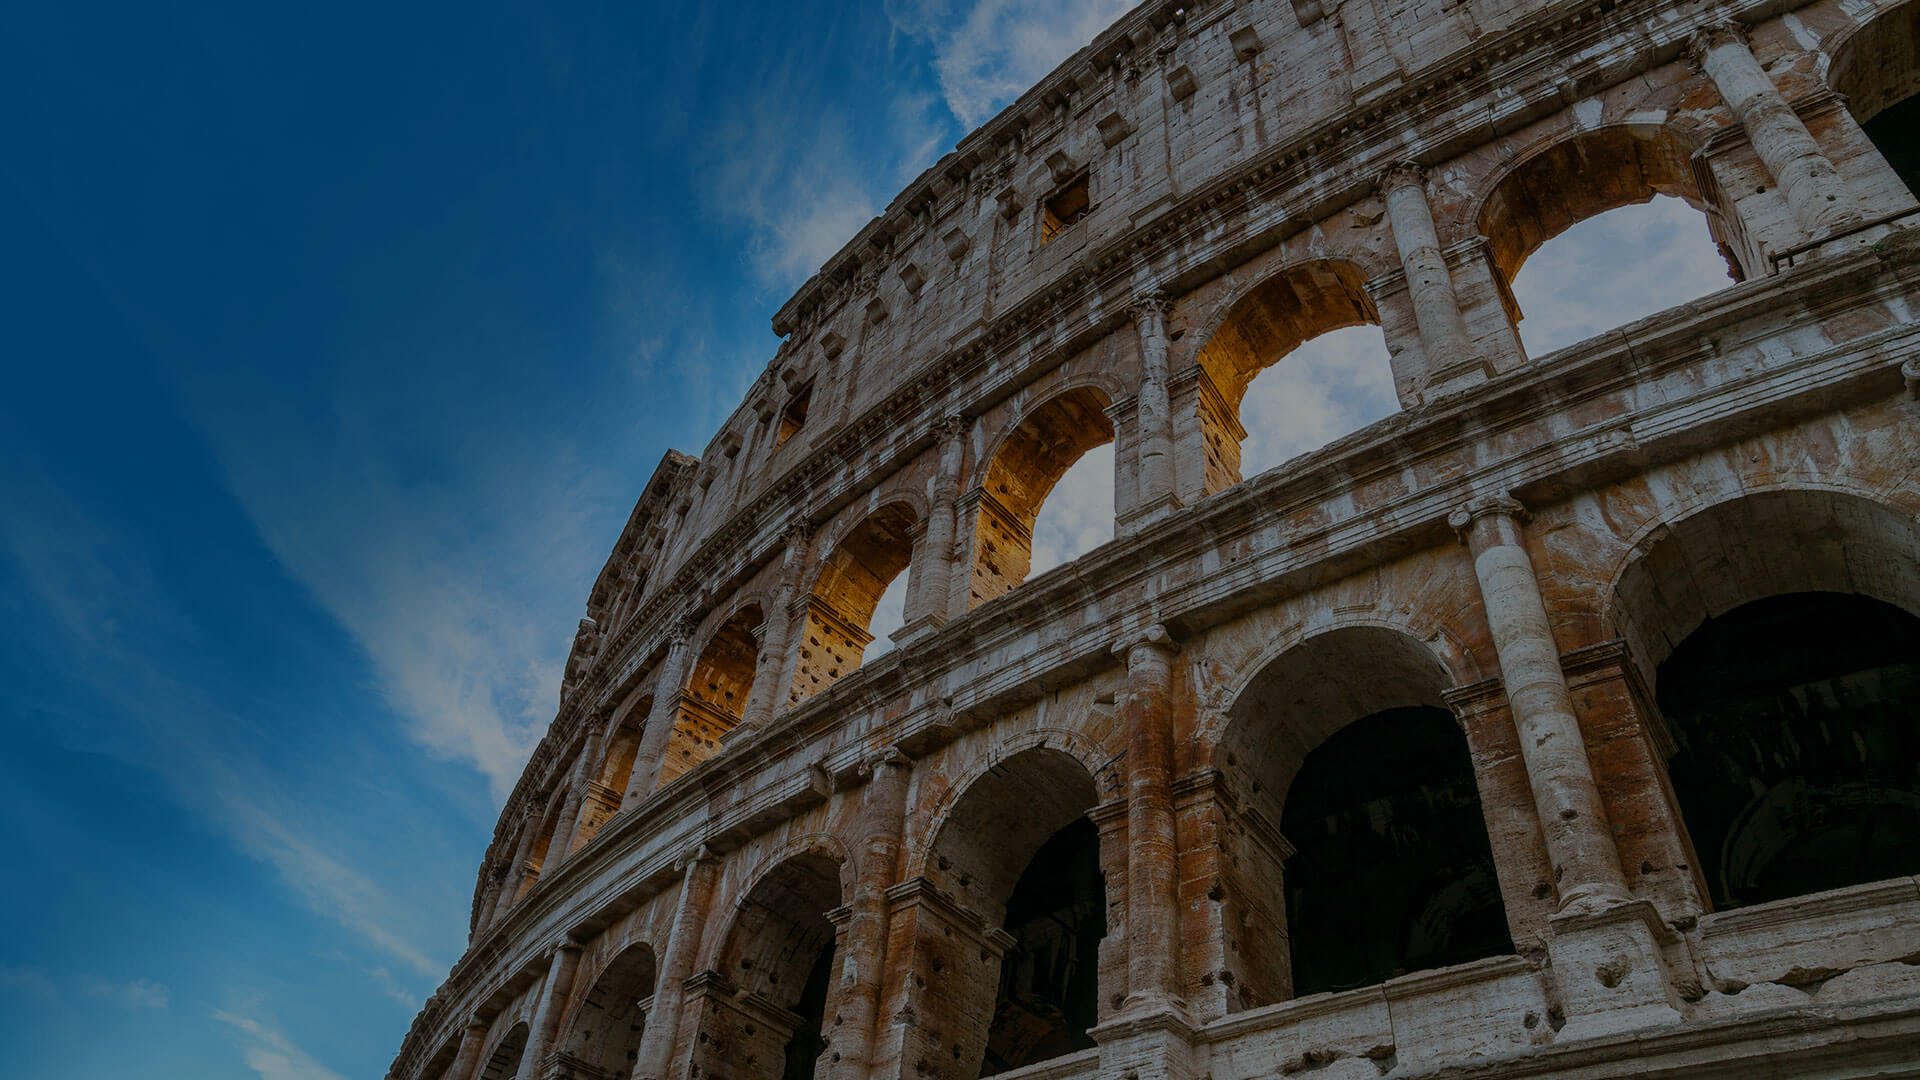 Insure your trip to the Roman Colosseum